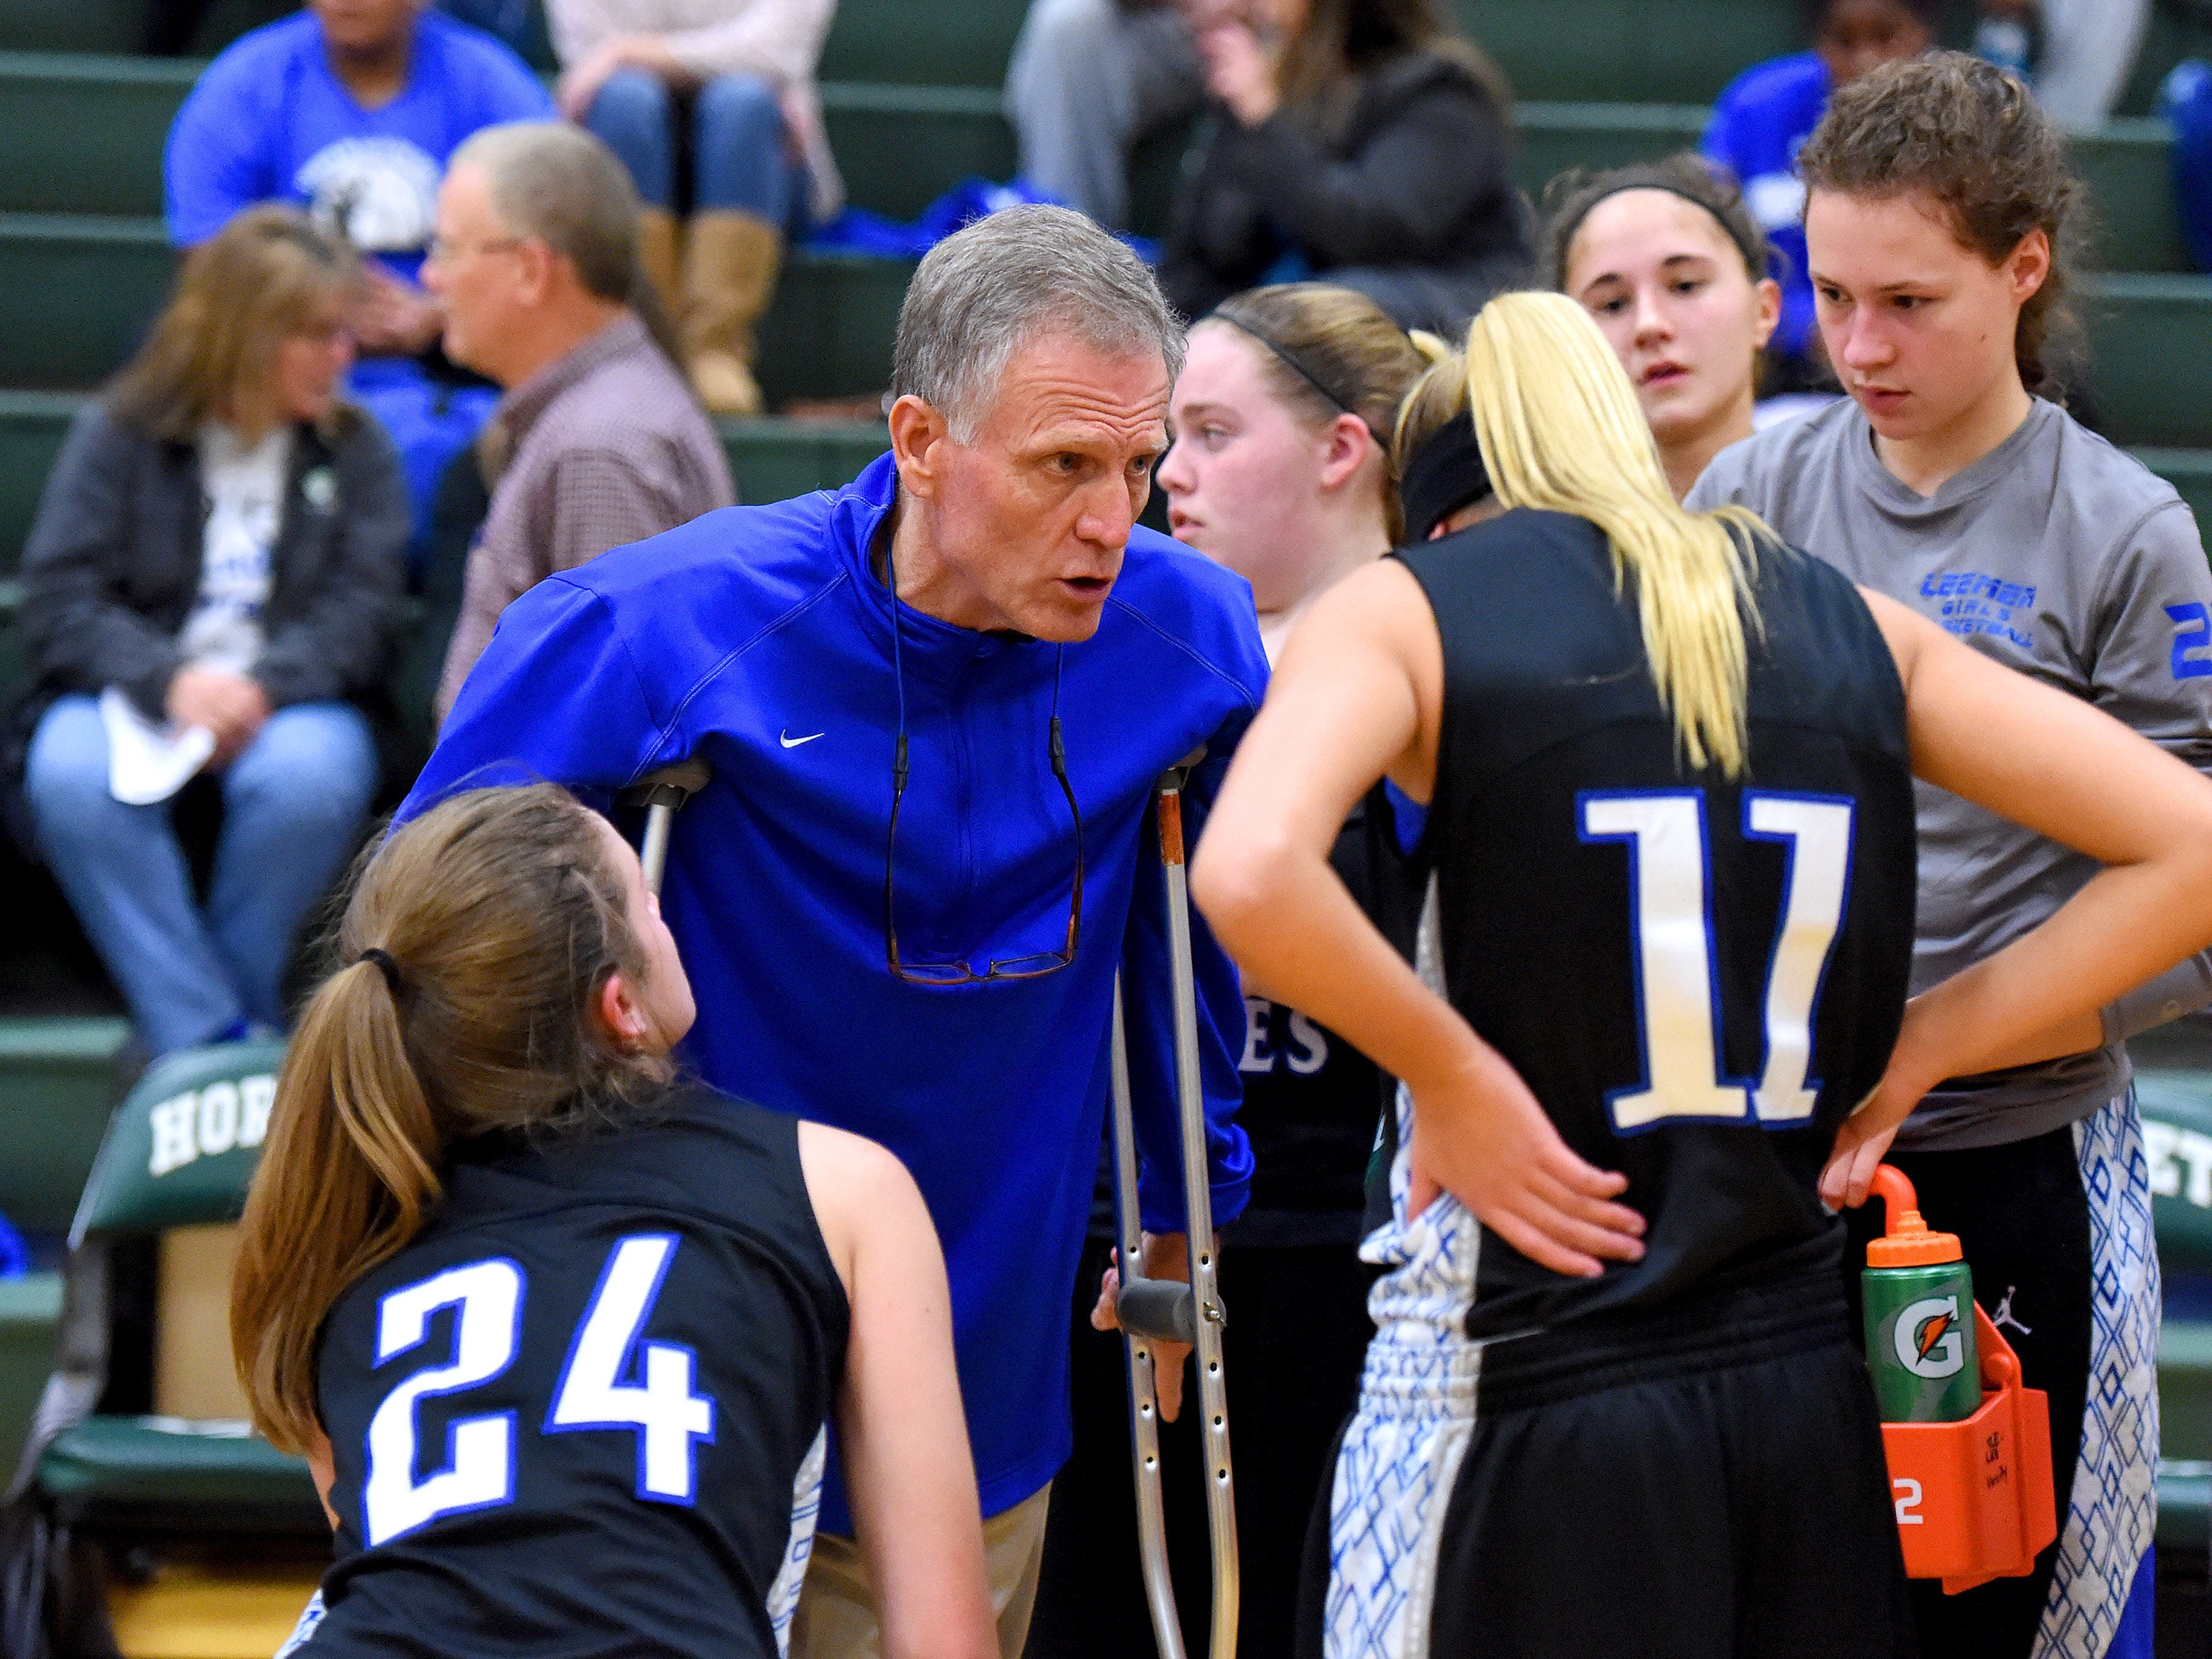 Robert E. Lee head coach Dennis Dull stands with crutches as he speaks with his team during a timeout in their basketball game against Wilson Memorial on Dec. 15.